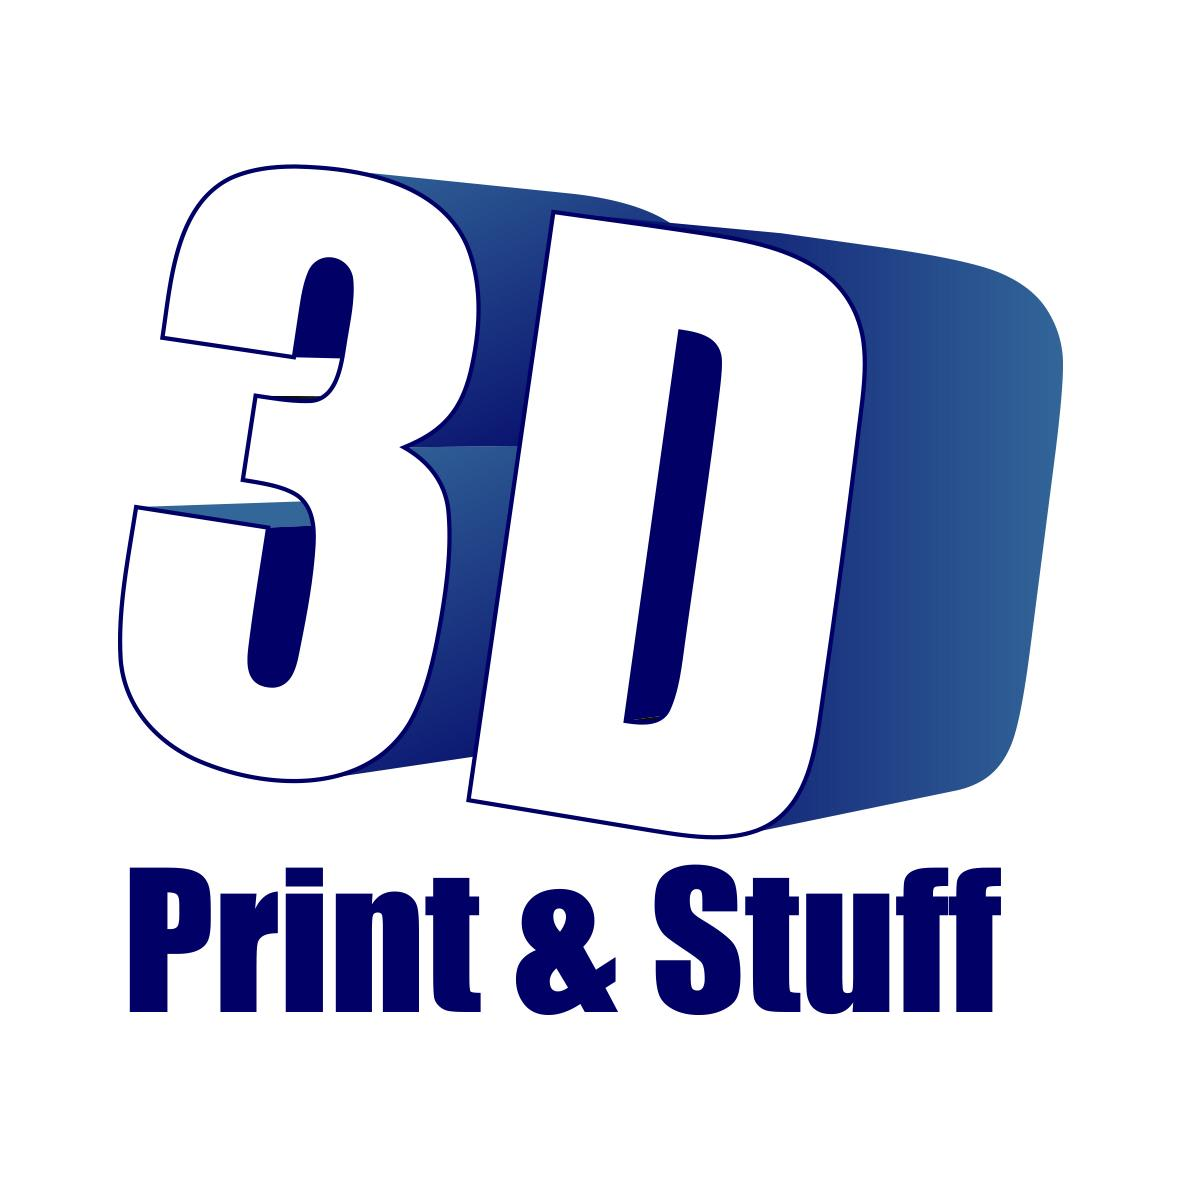 3D Print & Stuff - Brighton, East Sussex  BN1 7HB - 07957 208508 | ShowMeLocal.com